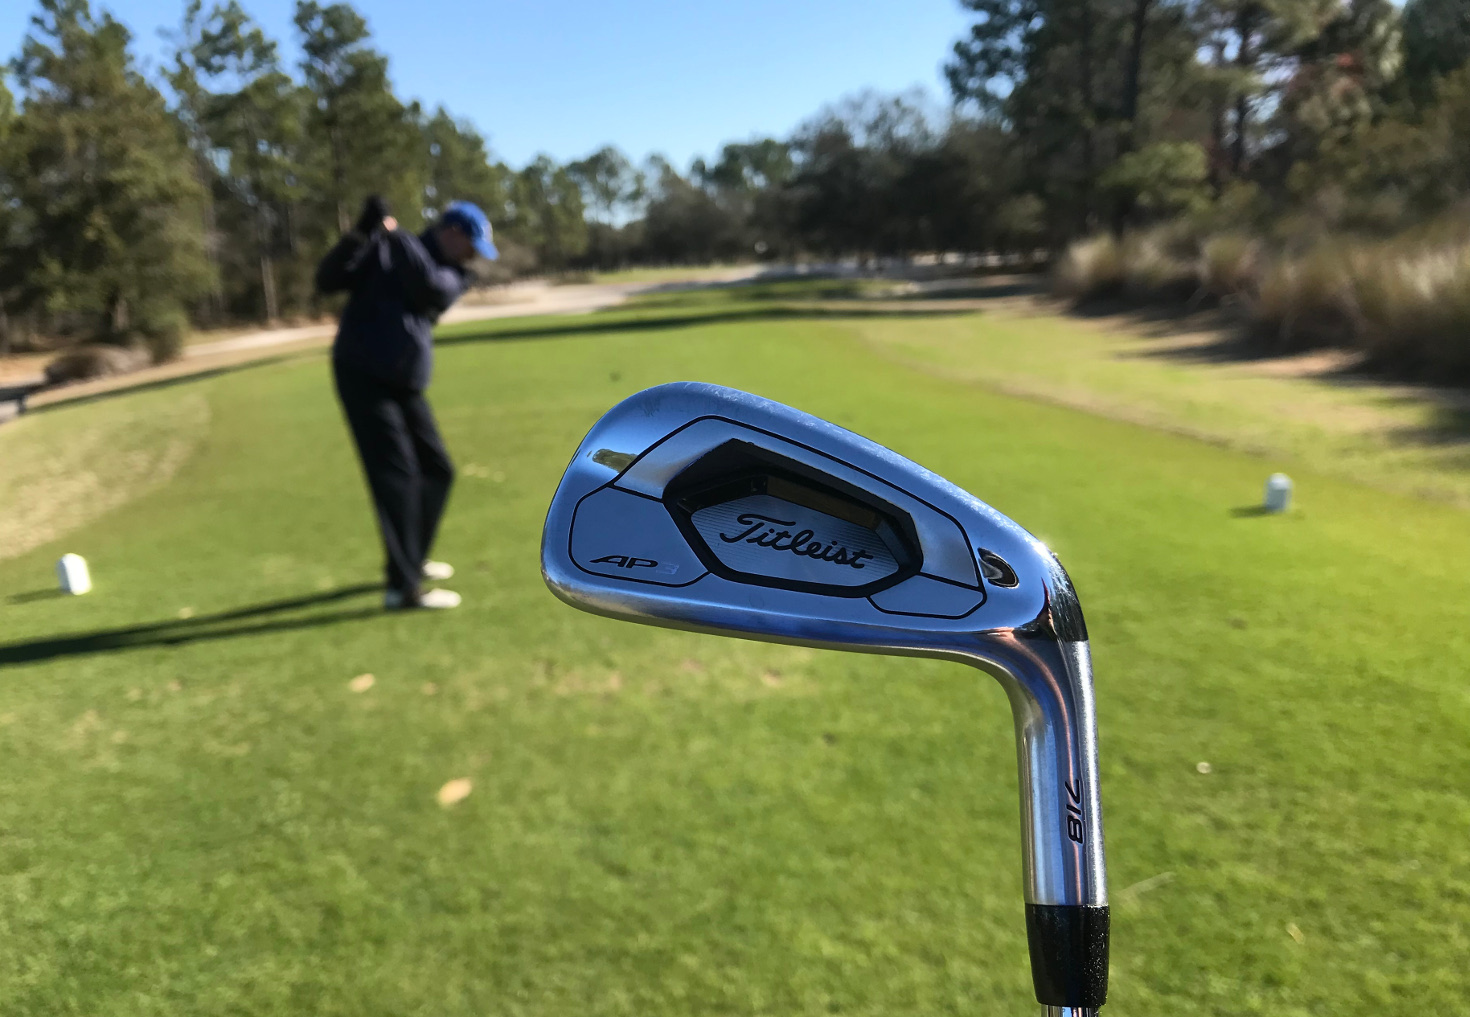 The AP3s can help marginal swings produce good results